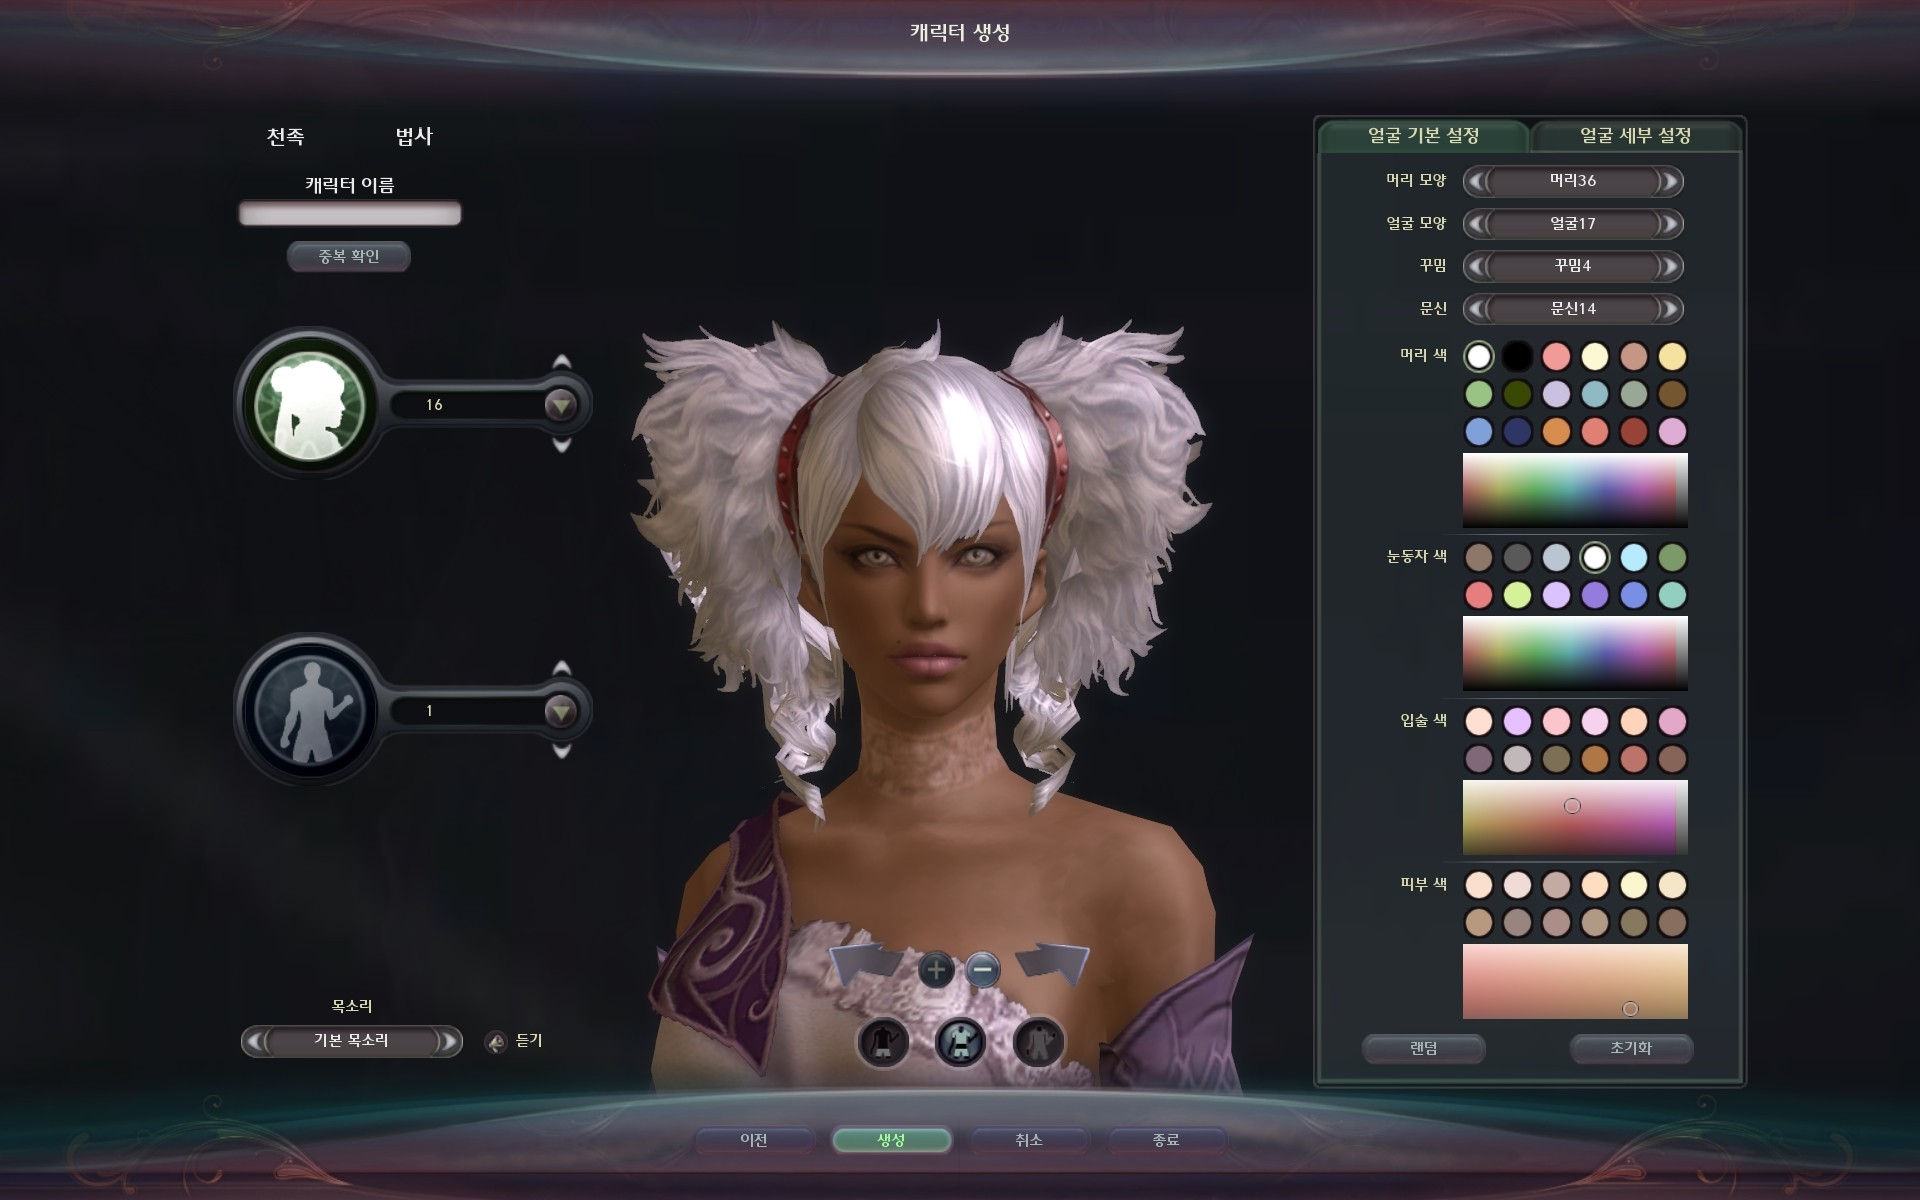 Aion - Female wizard character closeup 1/2